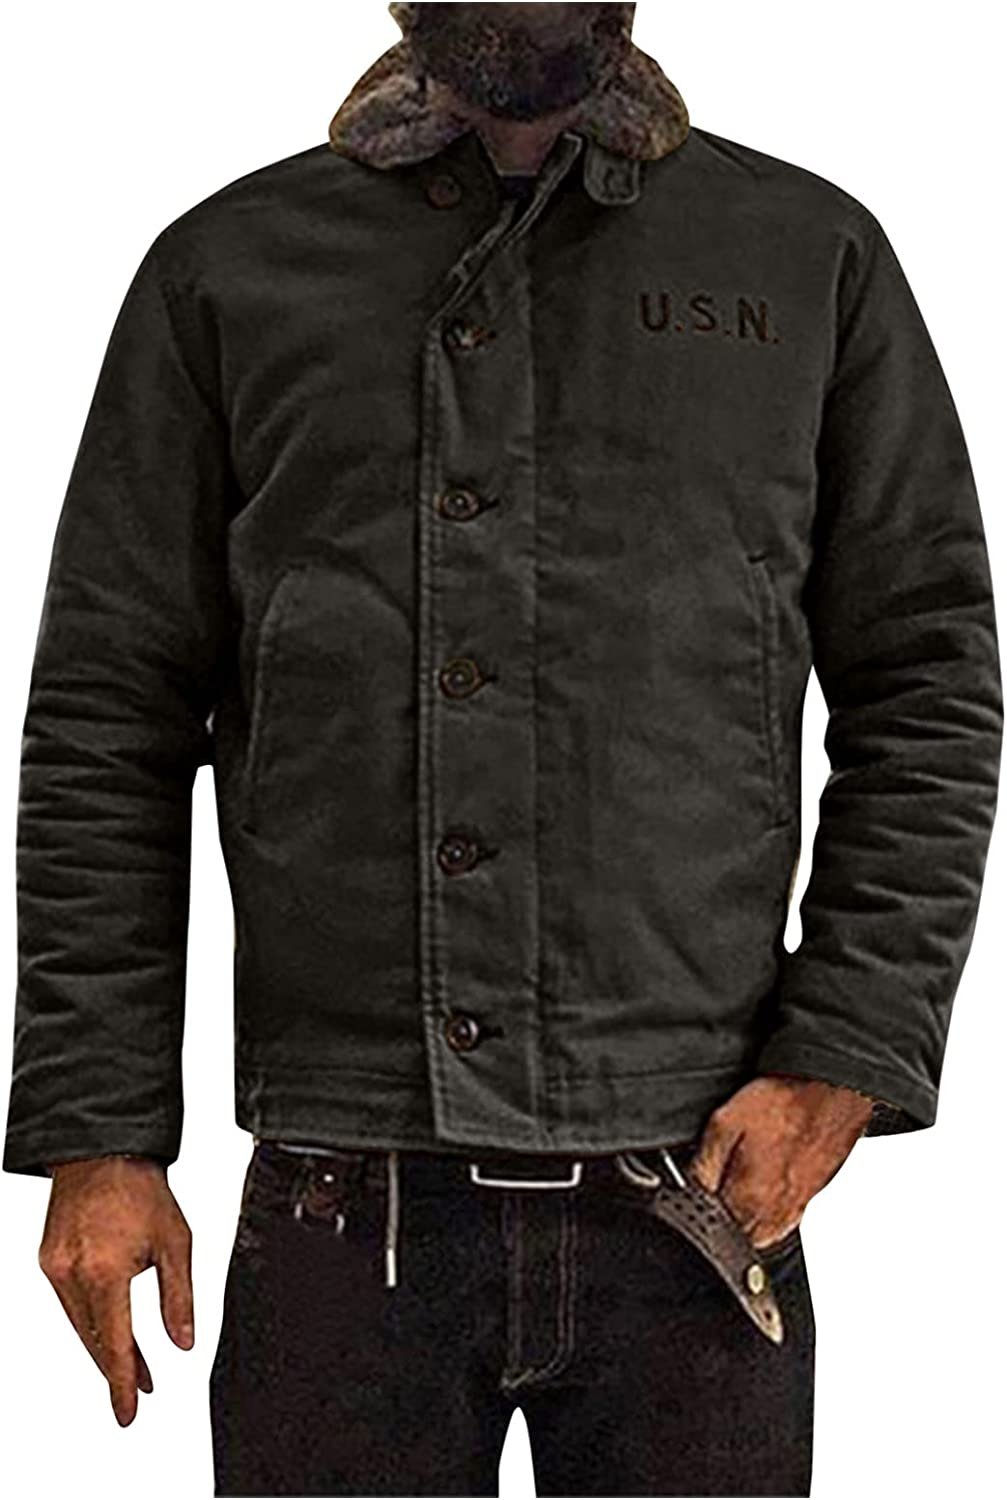 Mens Loose Jackets Lightweight Our shop most popular Shirt Coat Breasted Winter Al sold out. Single